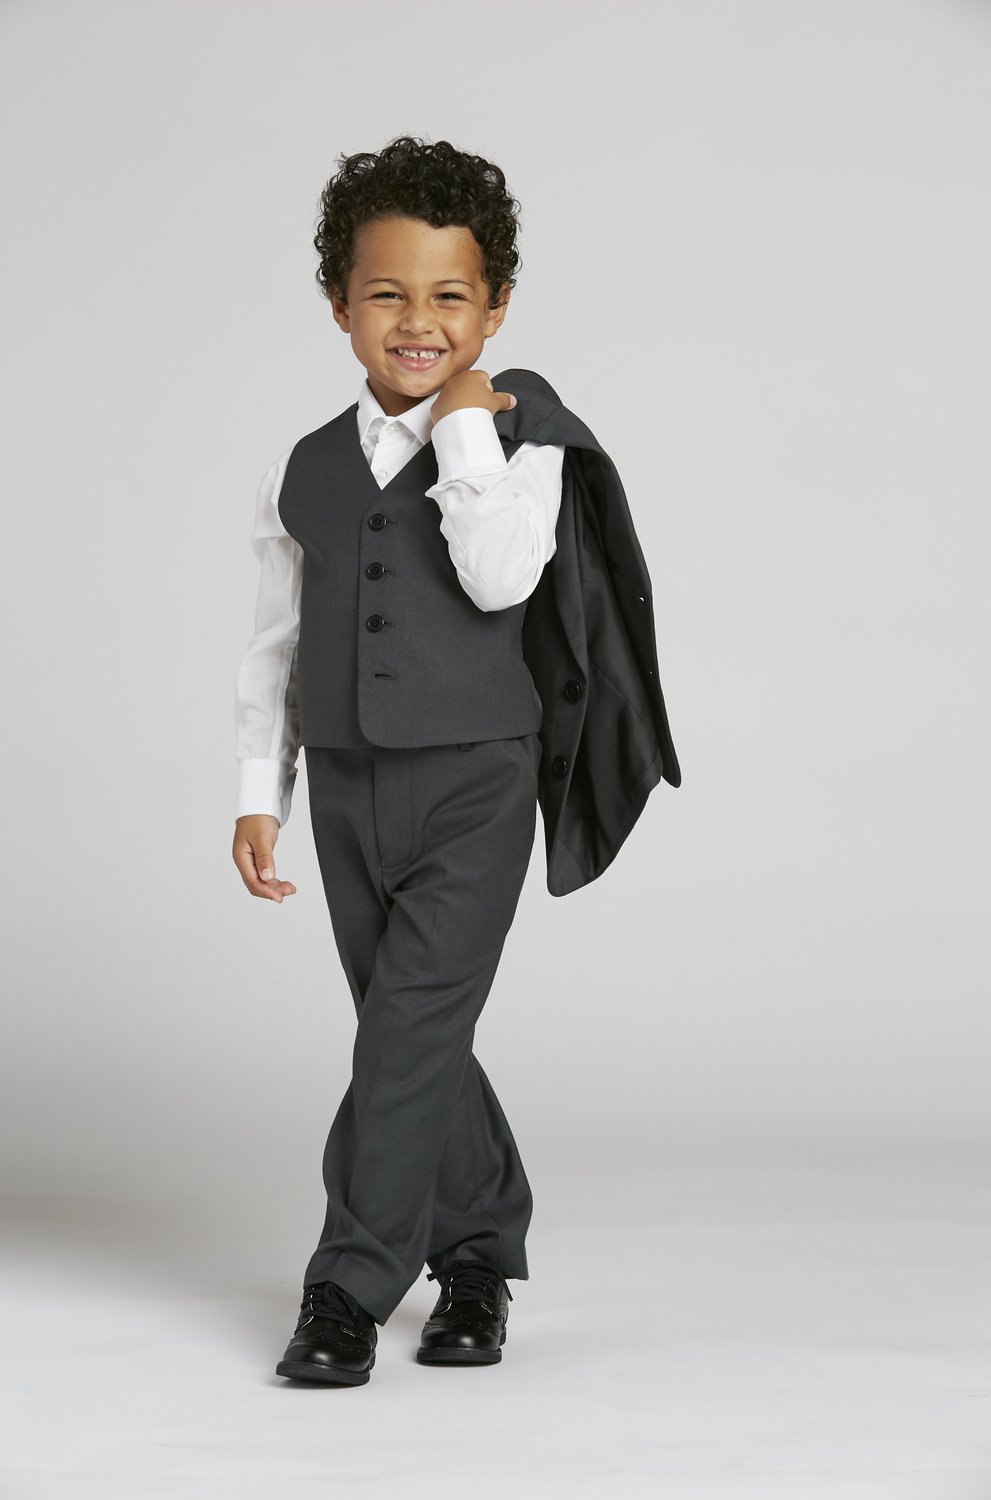 Tuxedos for kids